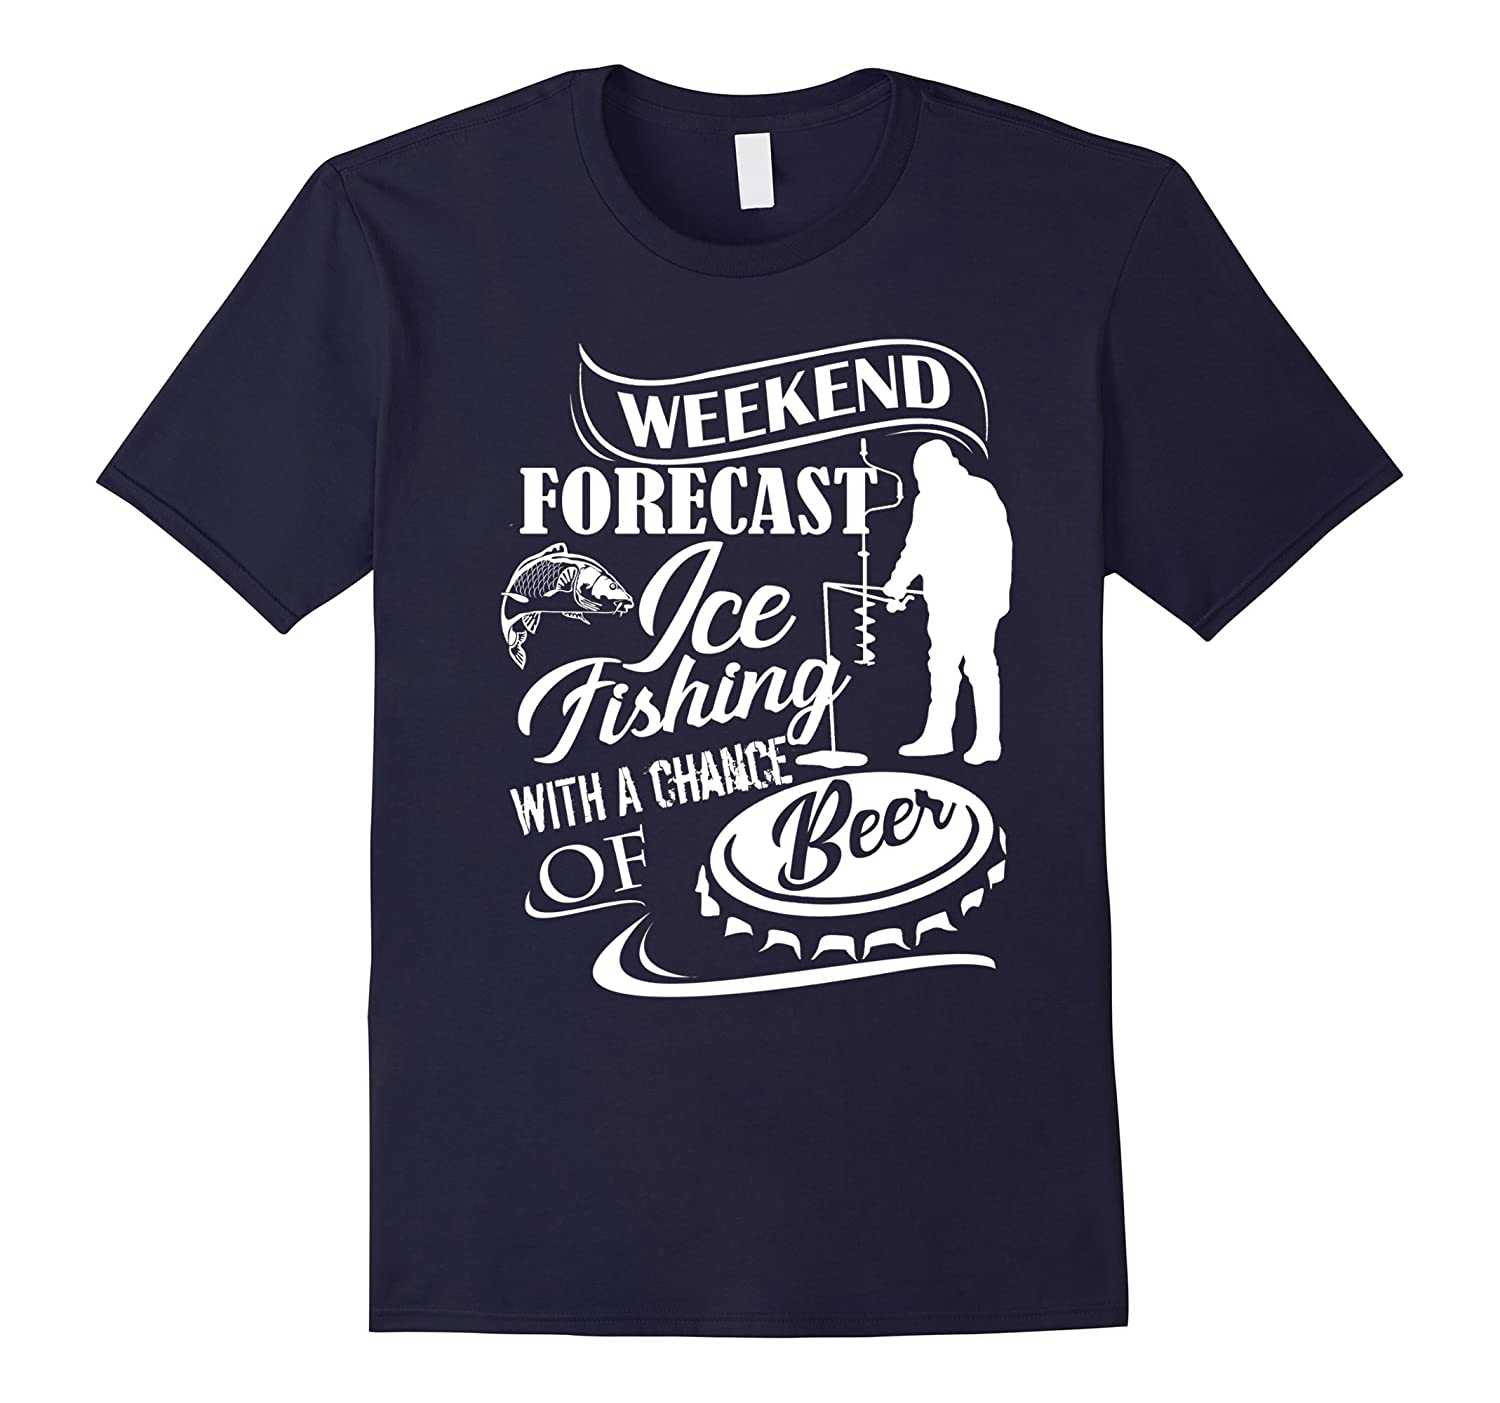 Ice fishing t shirts weekend forecast ice fishing goatstee for Ice fishing apparel